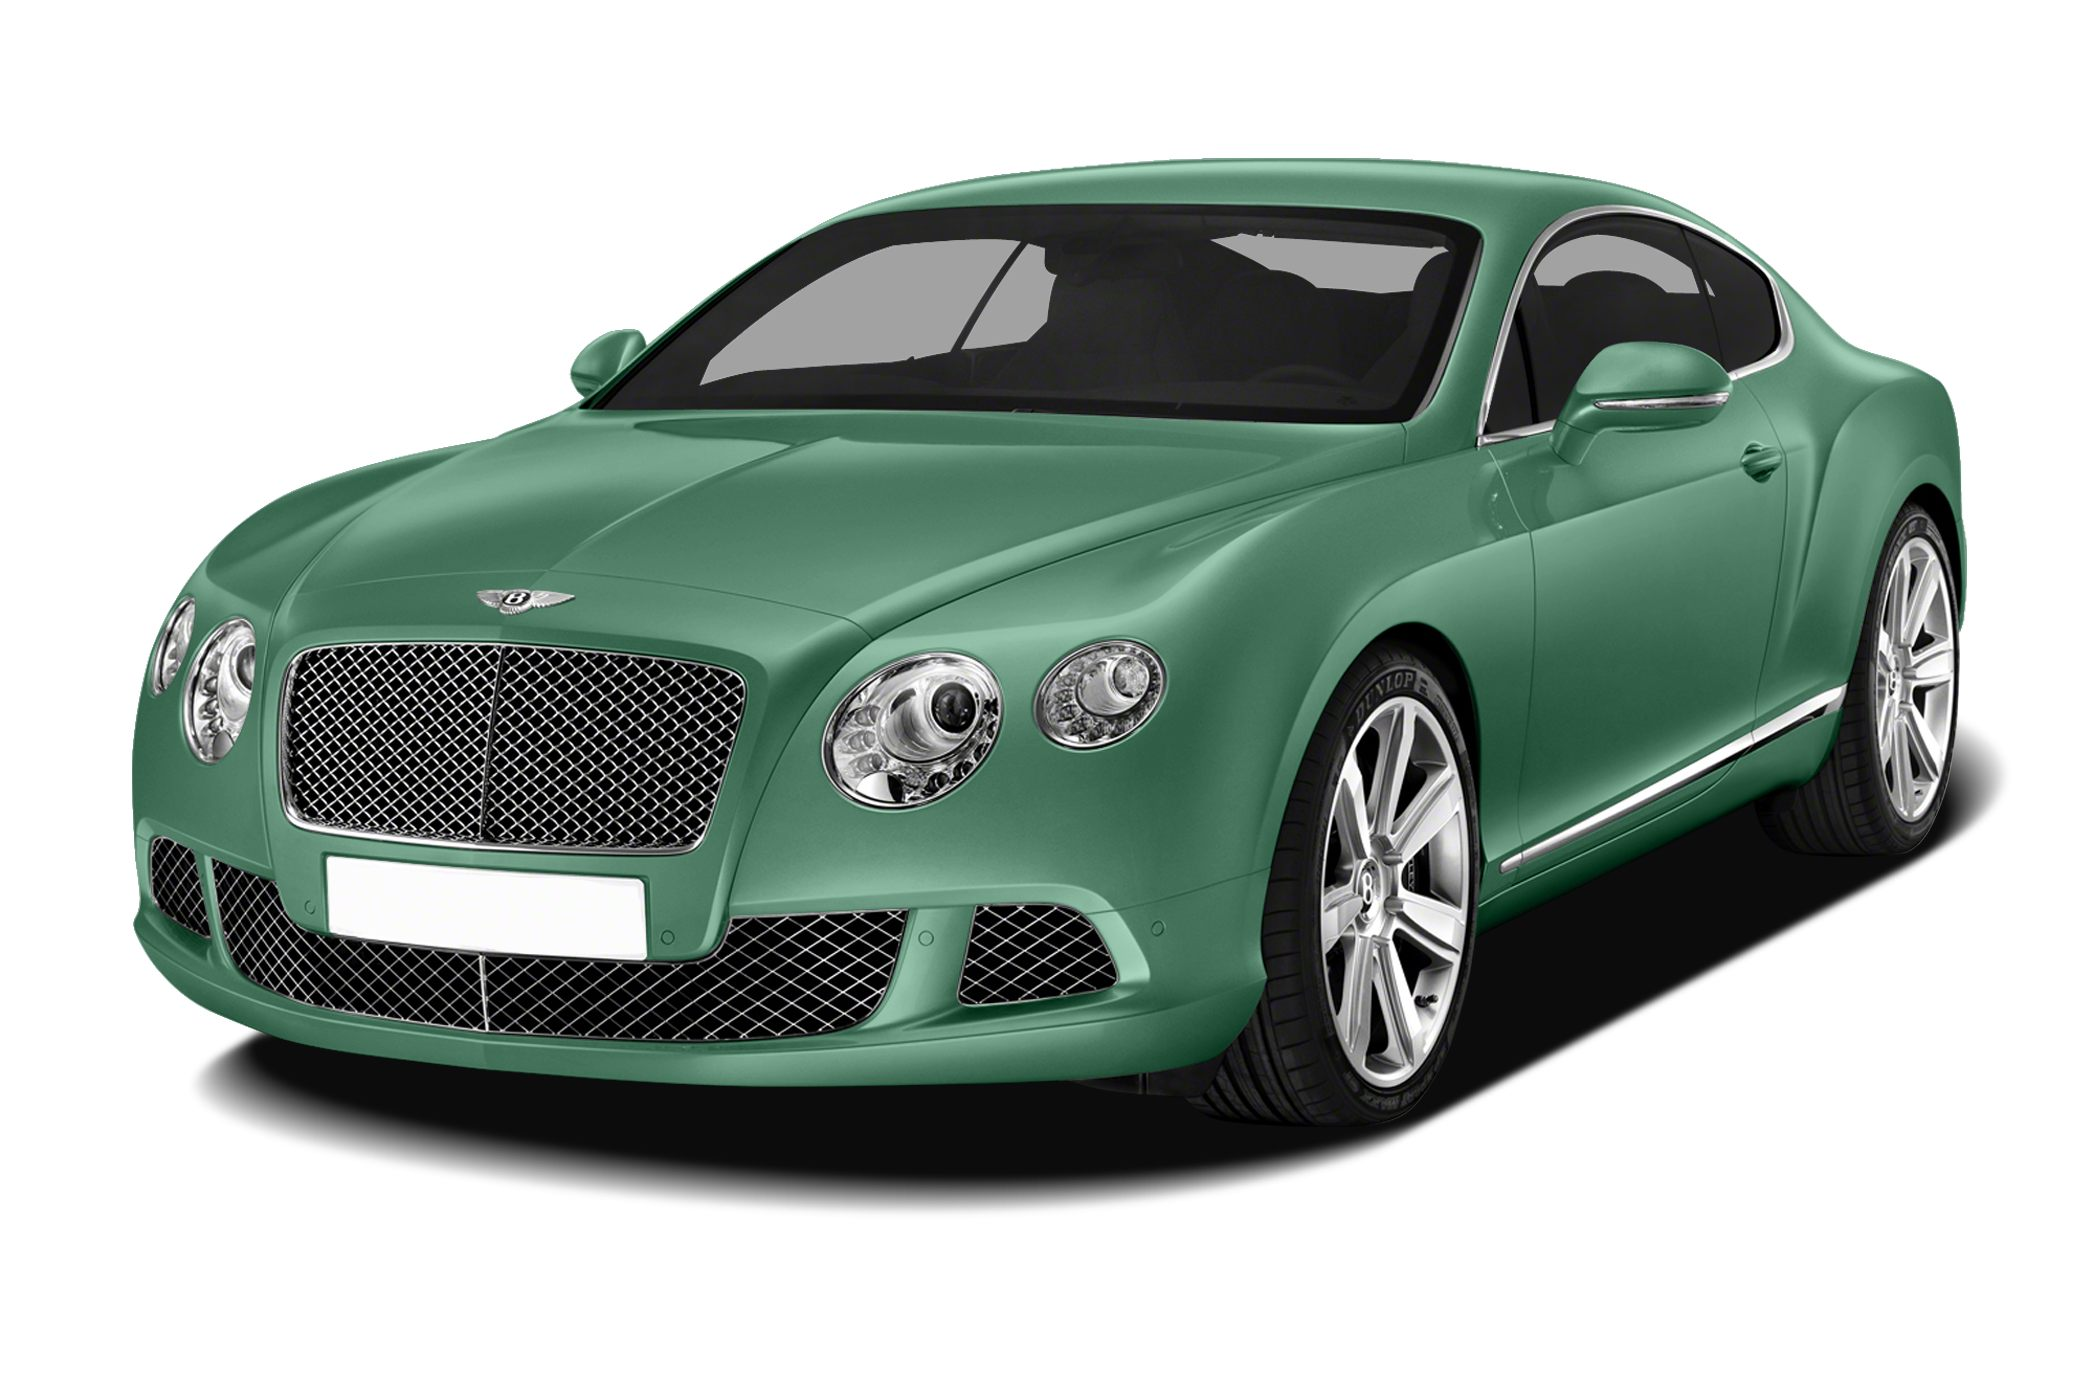 2013 Bentley Continental GT vs Other Vehicles Overview